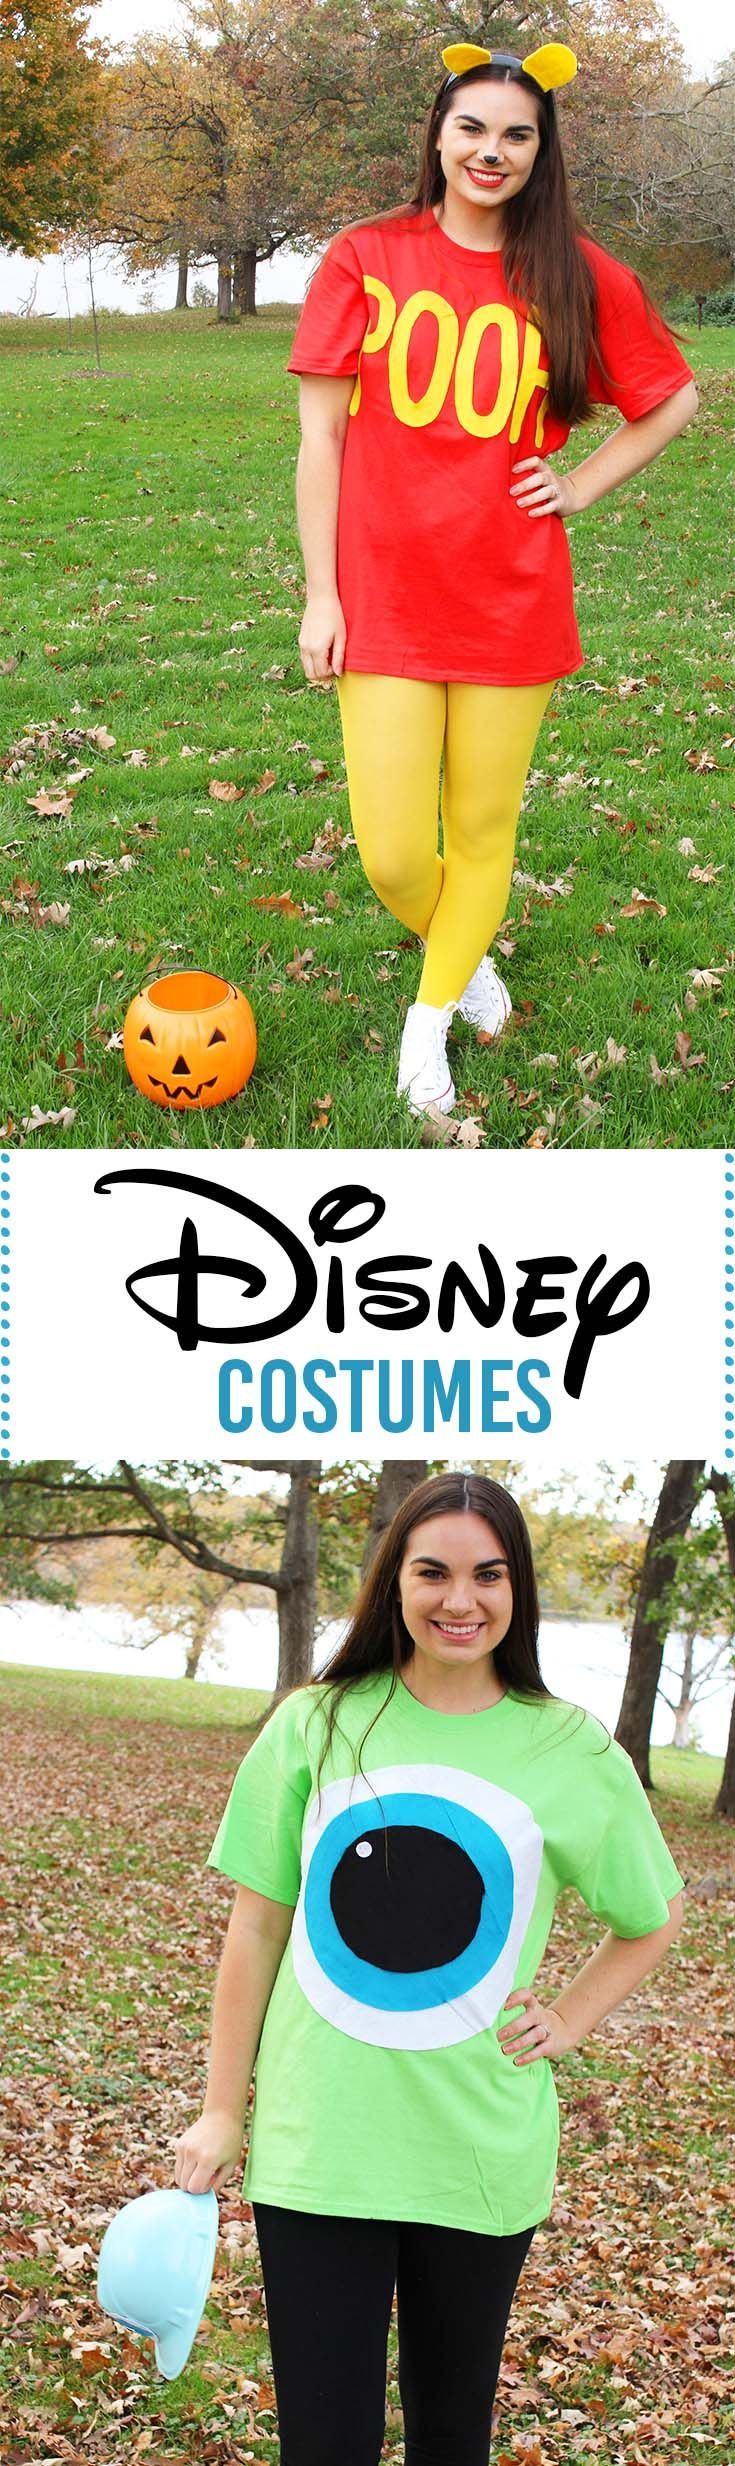 DIY Last Minute Disney Halloween Costumes! Super easy and inexpensive Disney Character  Costumes! DIY Winnie the Pooh and DIY Mike Wazowski from Monsters Inc.